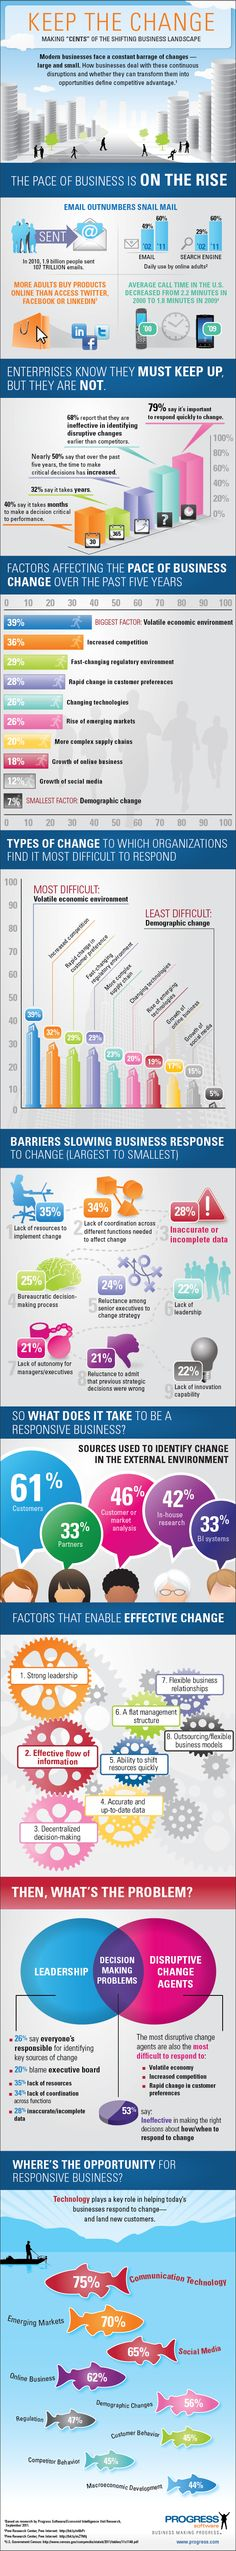 "An #infographic from @ConnectWise on how technology is changing business. We can help your business make ""cents"" of the madness."